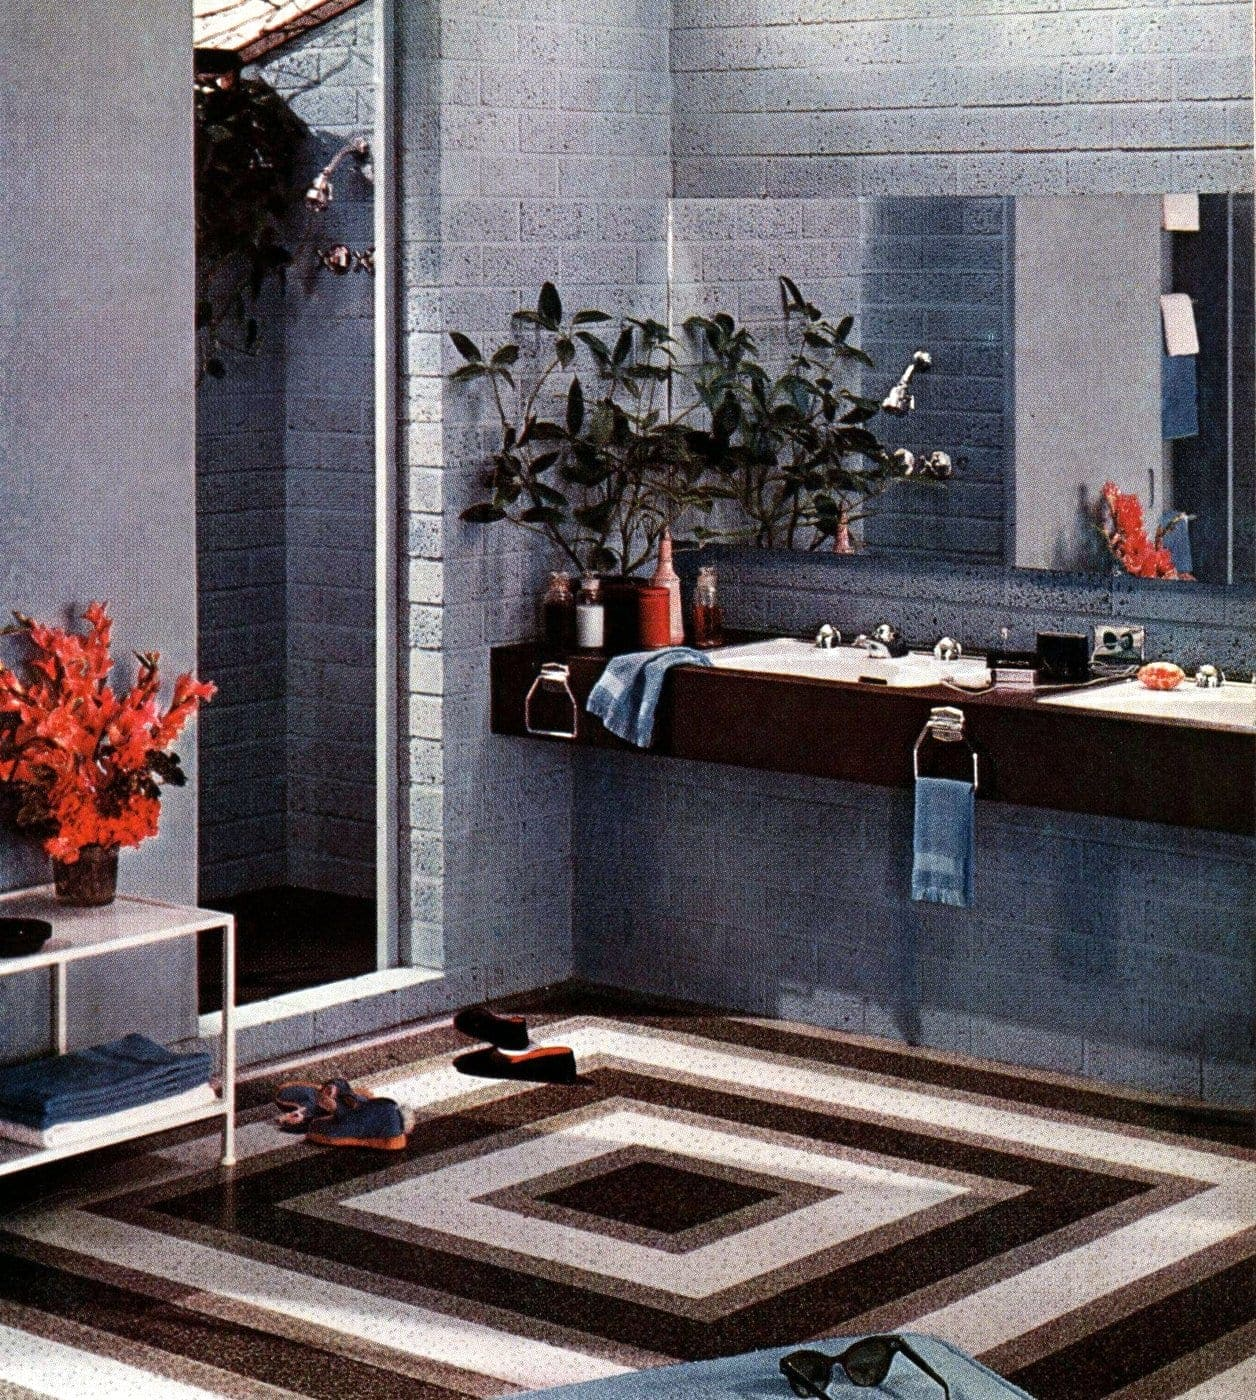 Square retro style bathroom flooring from the 1950s